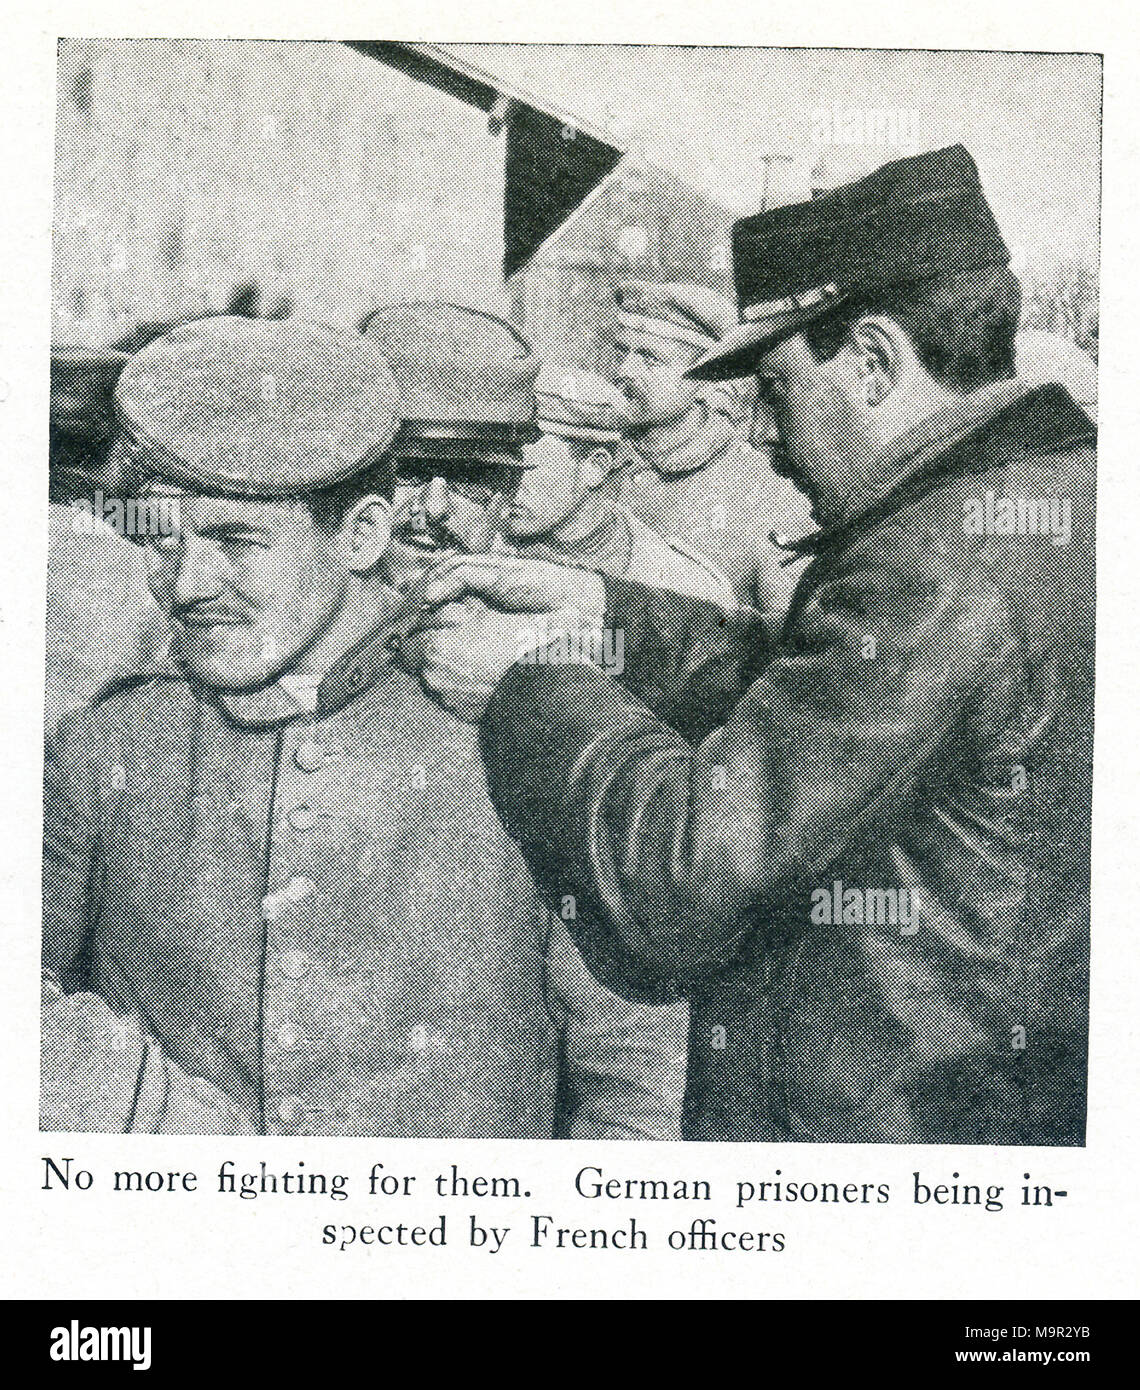 This photo dates to World War I and shows German prisoners. The caption says: No more fighting for them. German prisoners being inspected by French officers. - Stock Image